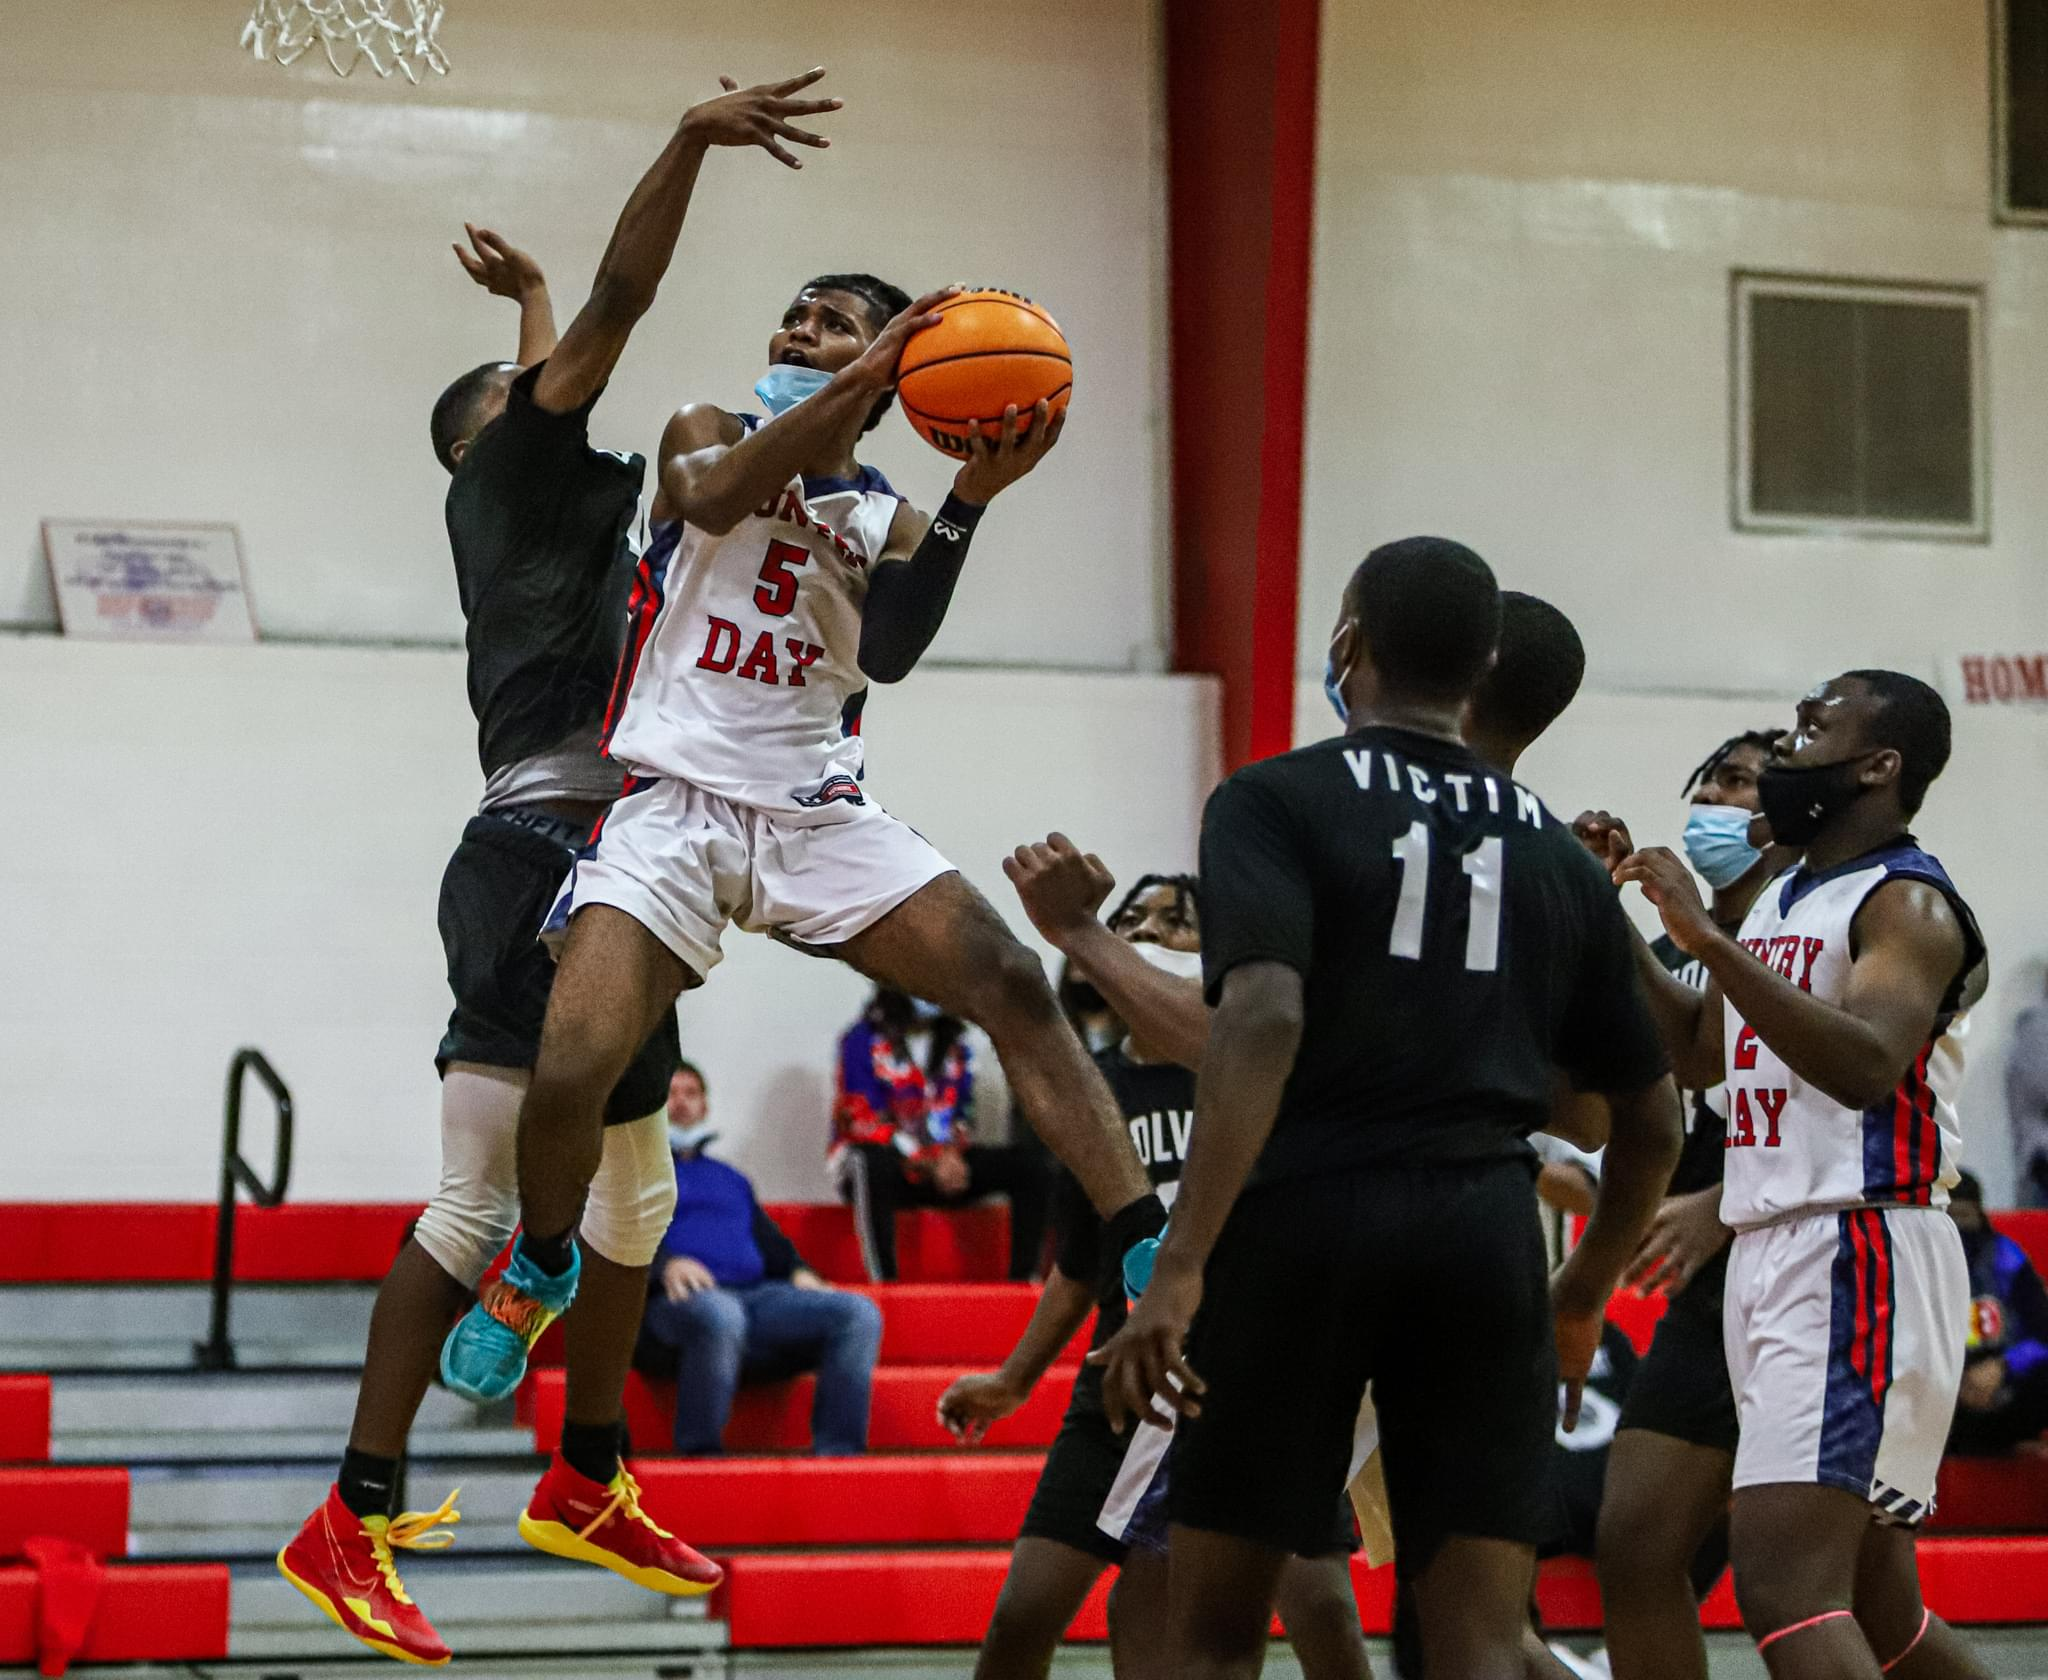 Boys Basketball: WCDS Storms Back To Beat Wake Academy Homeschool (PHOTO GALLERY)